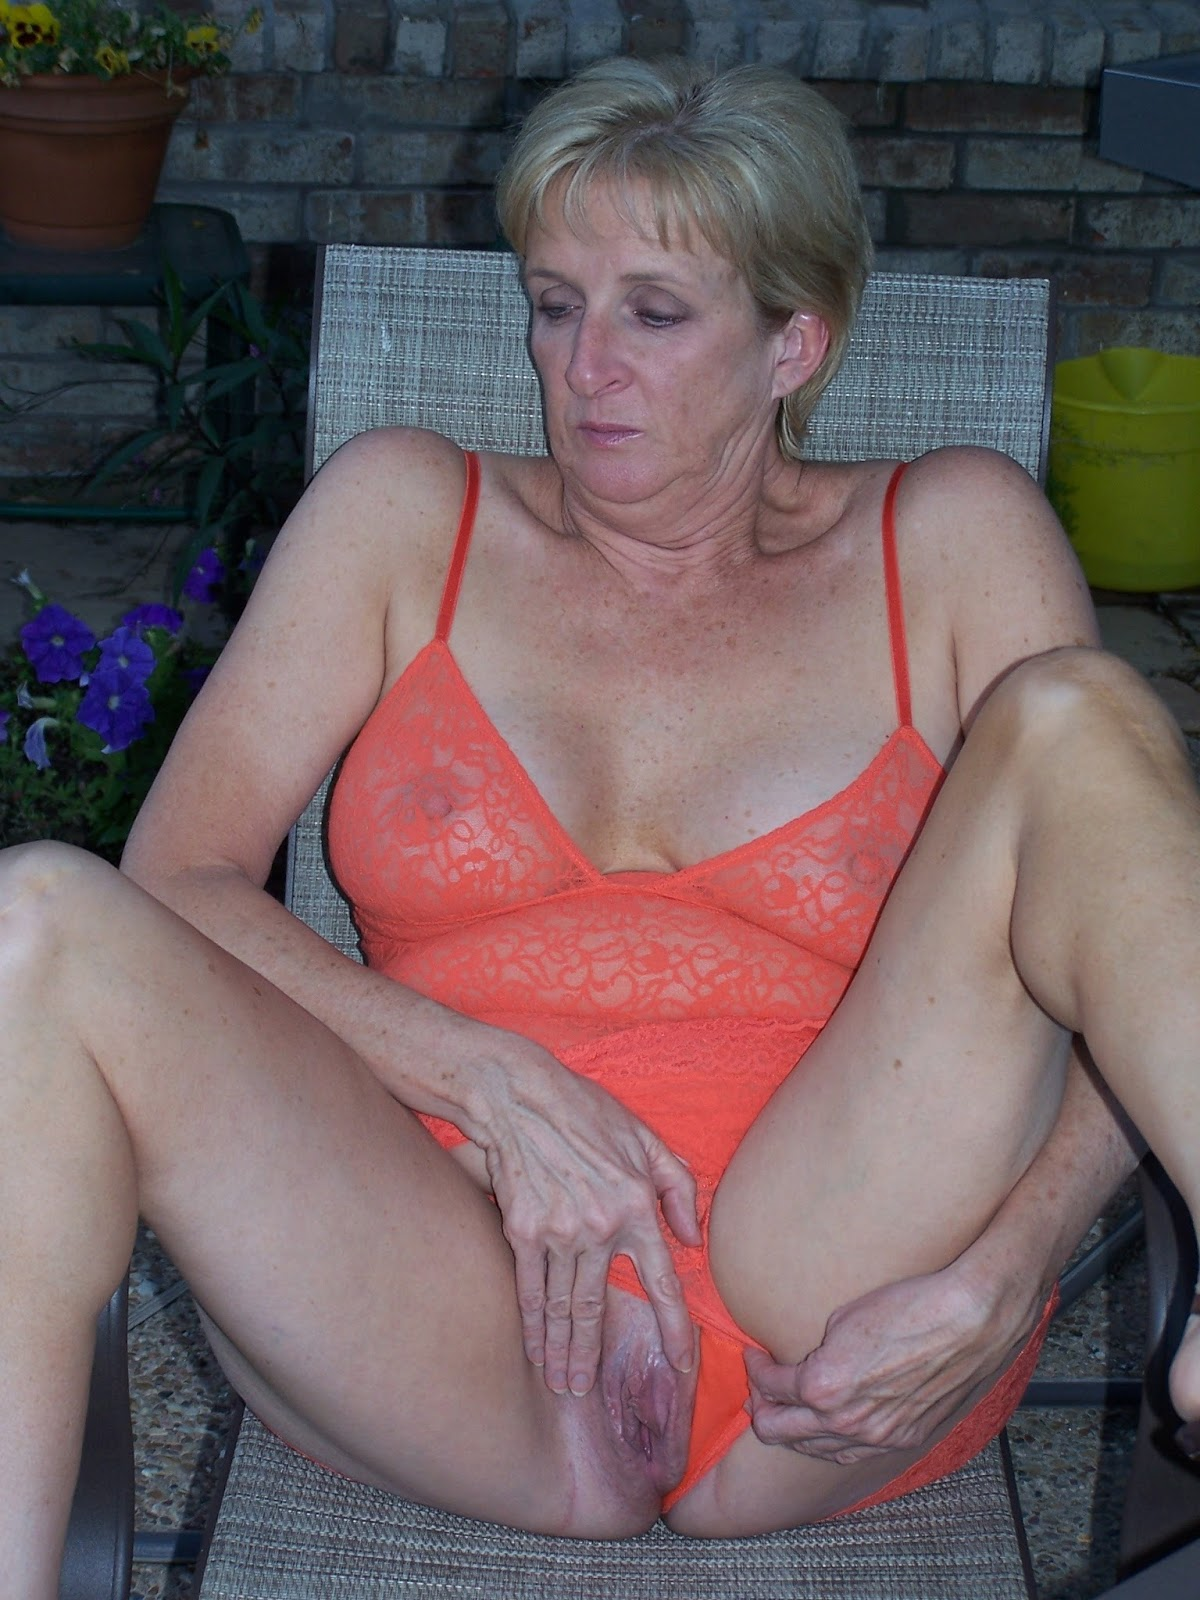 Archiveoffoldwomenblogspotcom Mature Amateur Photos-7408